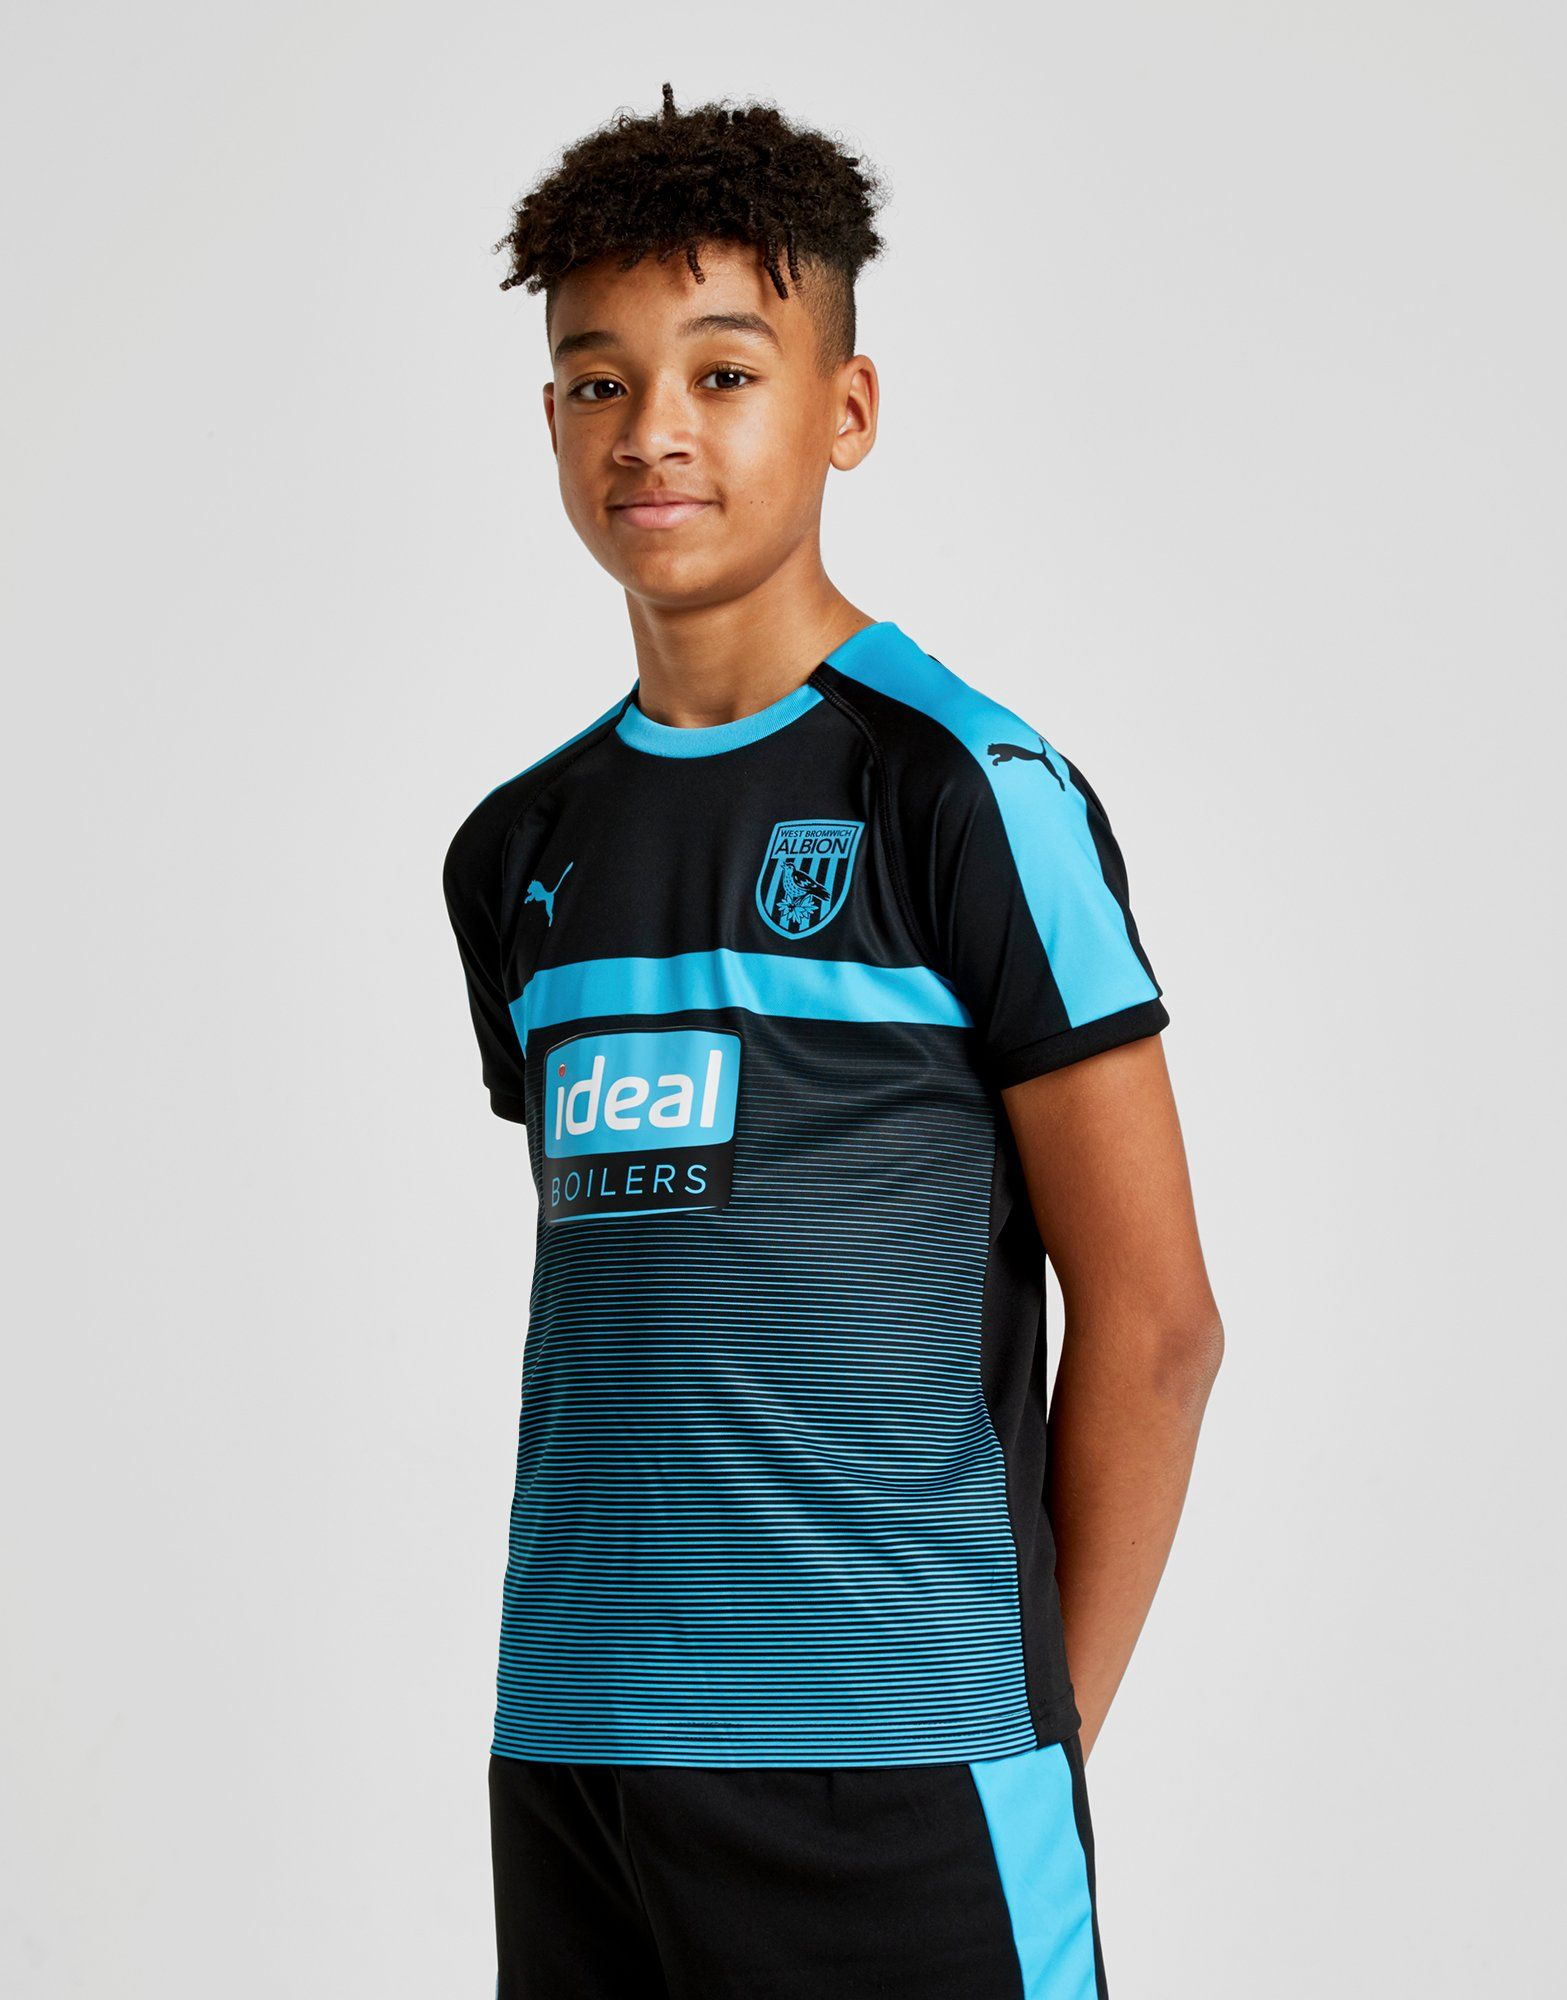 a854ab337 PUMA West Bromwich Albion 2018 19 Away Shirt Junior